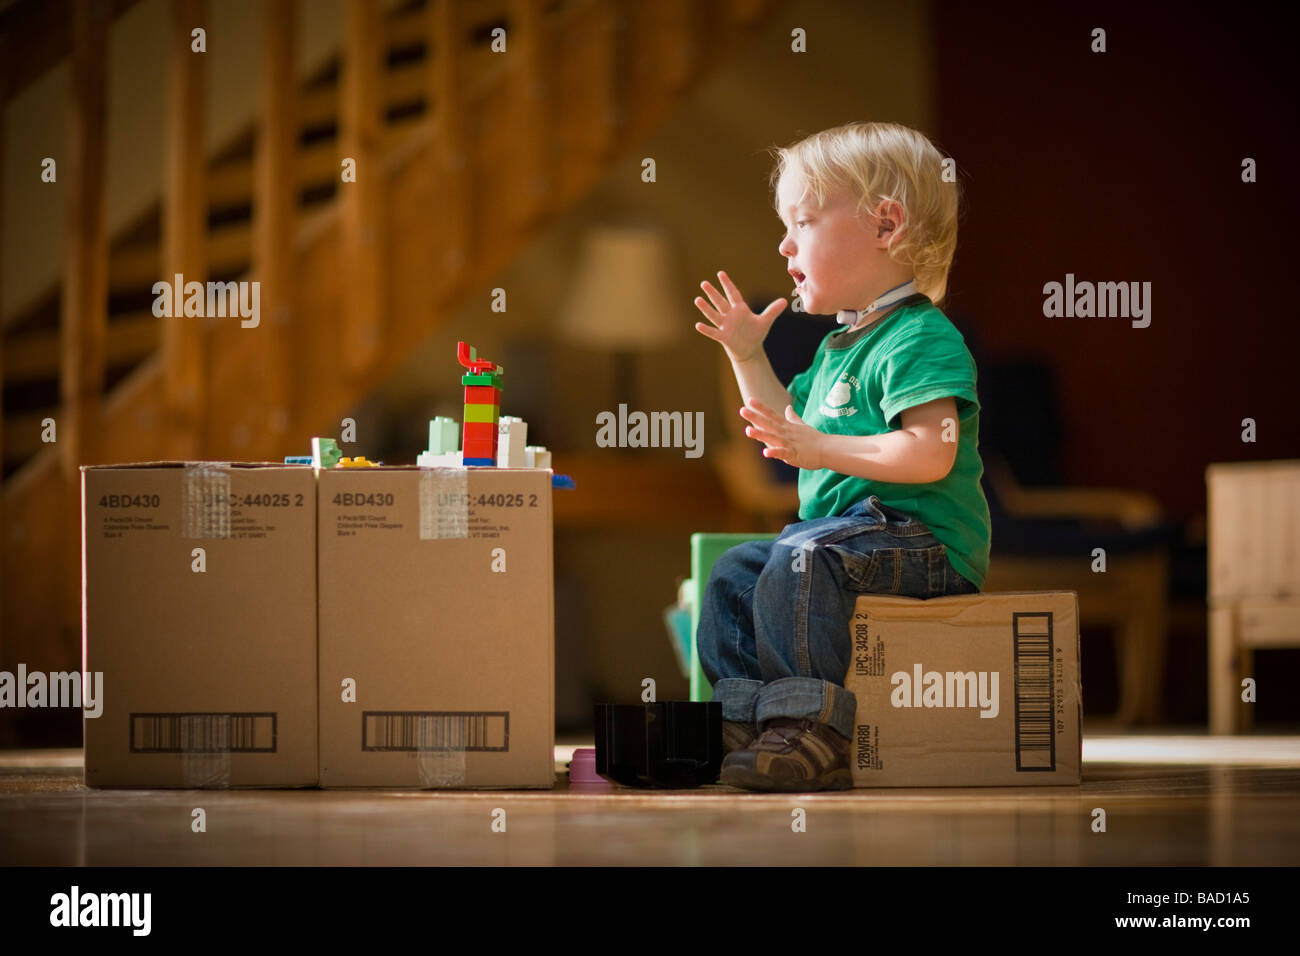 Toddler saying Mom using sign language while playing with toys on cardboard boxes - Stock Image